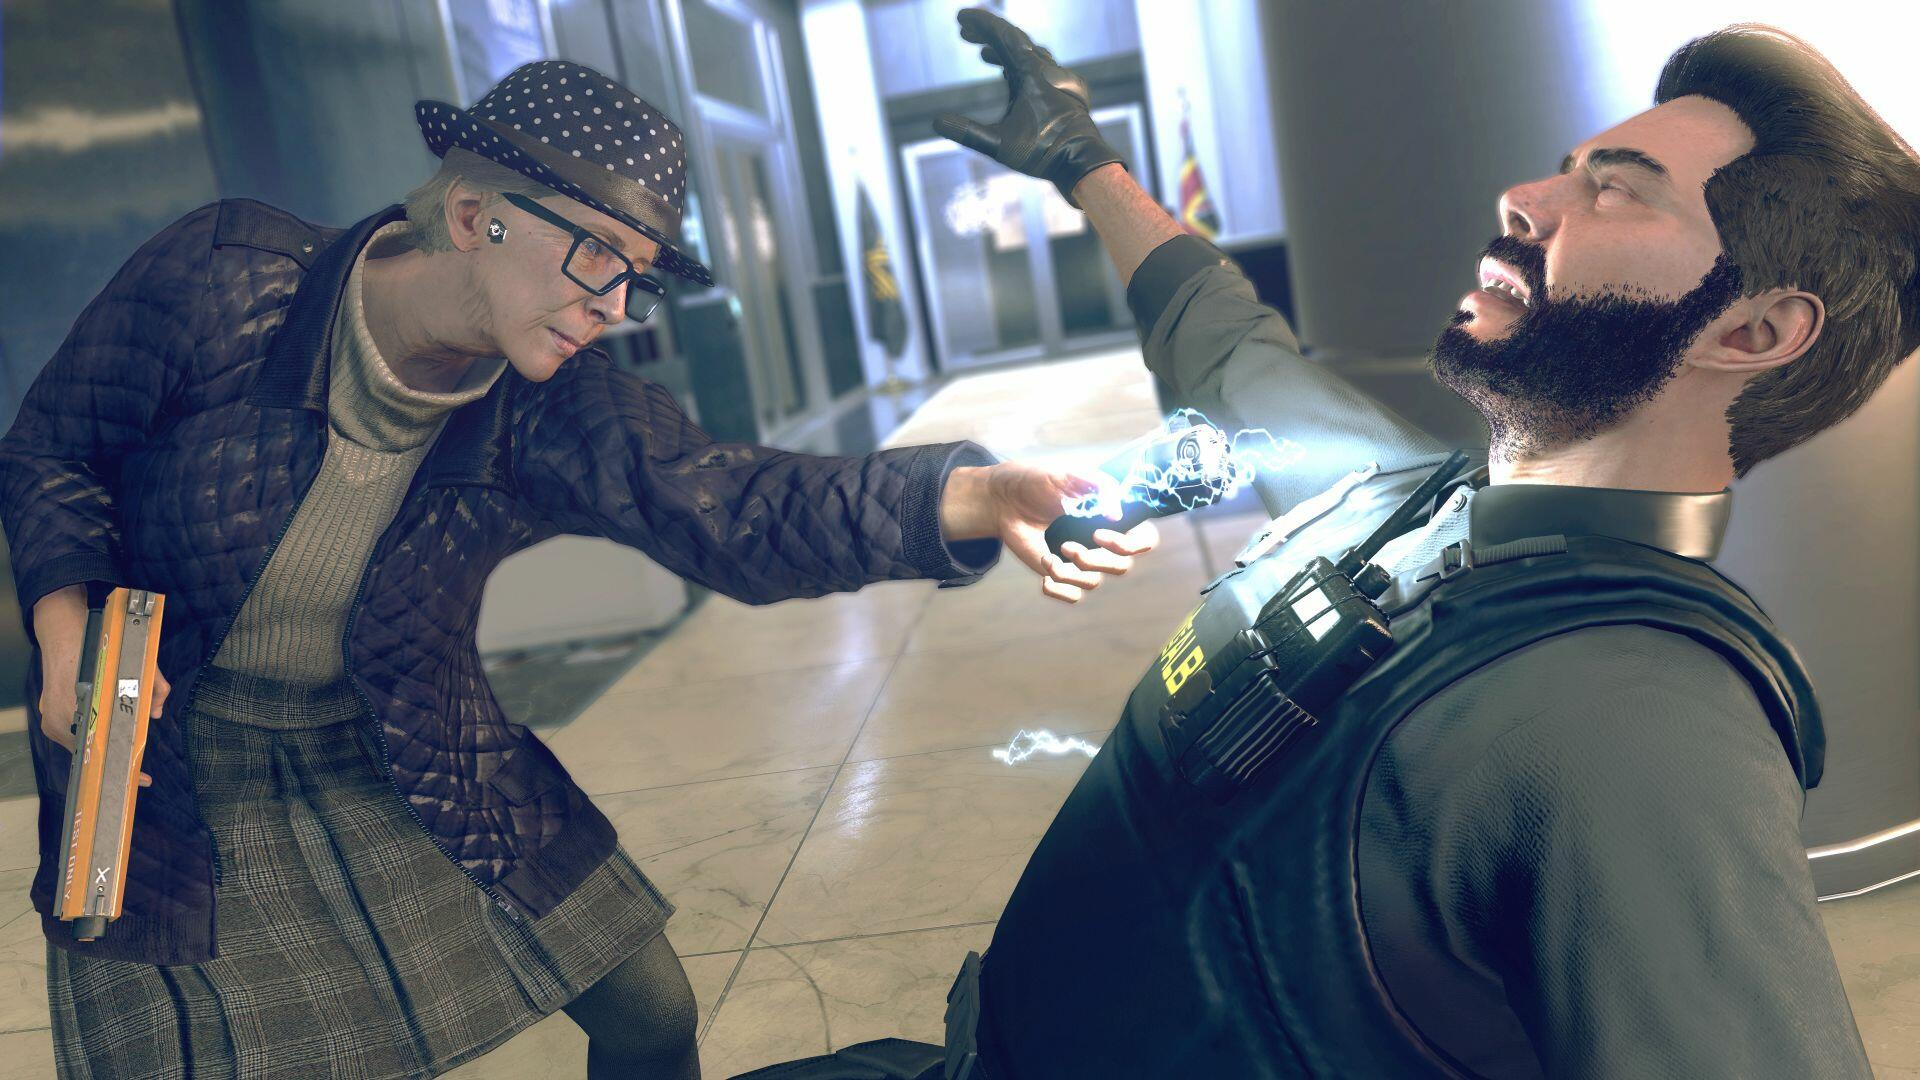 Ubisoft Delays Three Games, Including Watch Dogs Legion, to Beyond March 2020